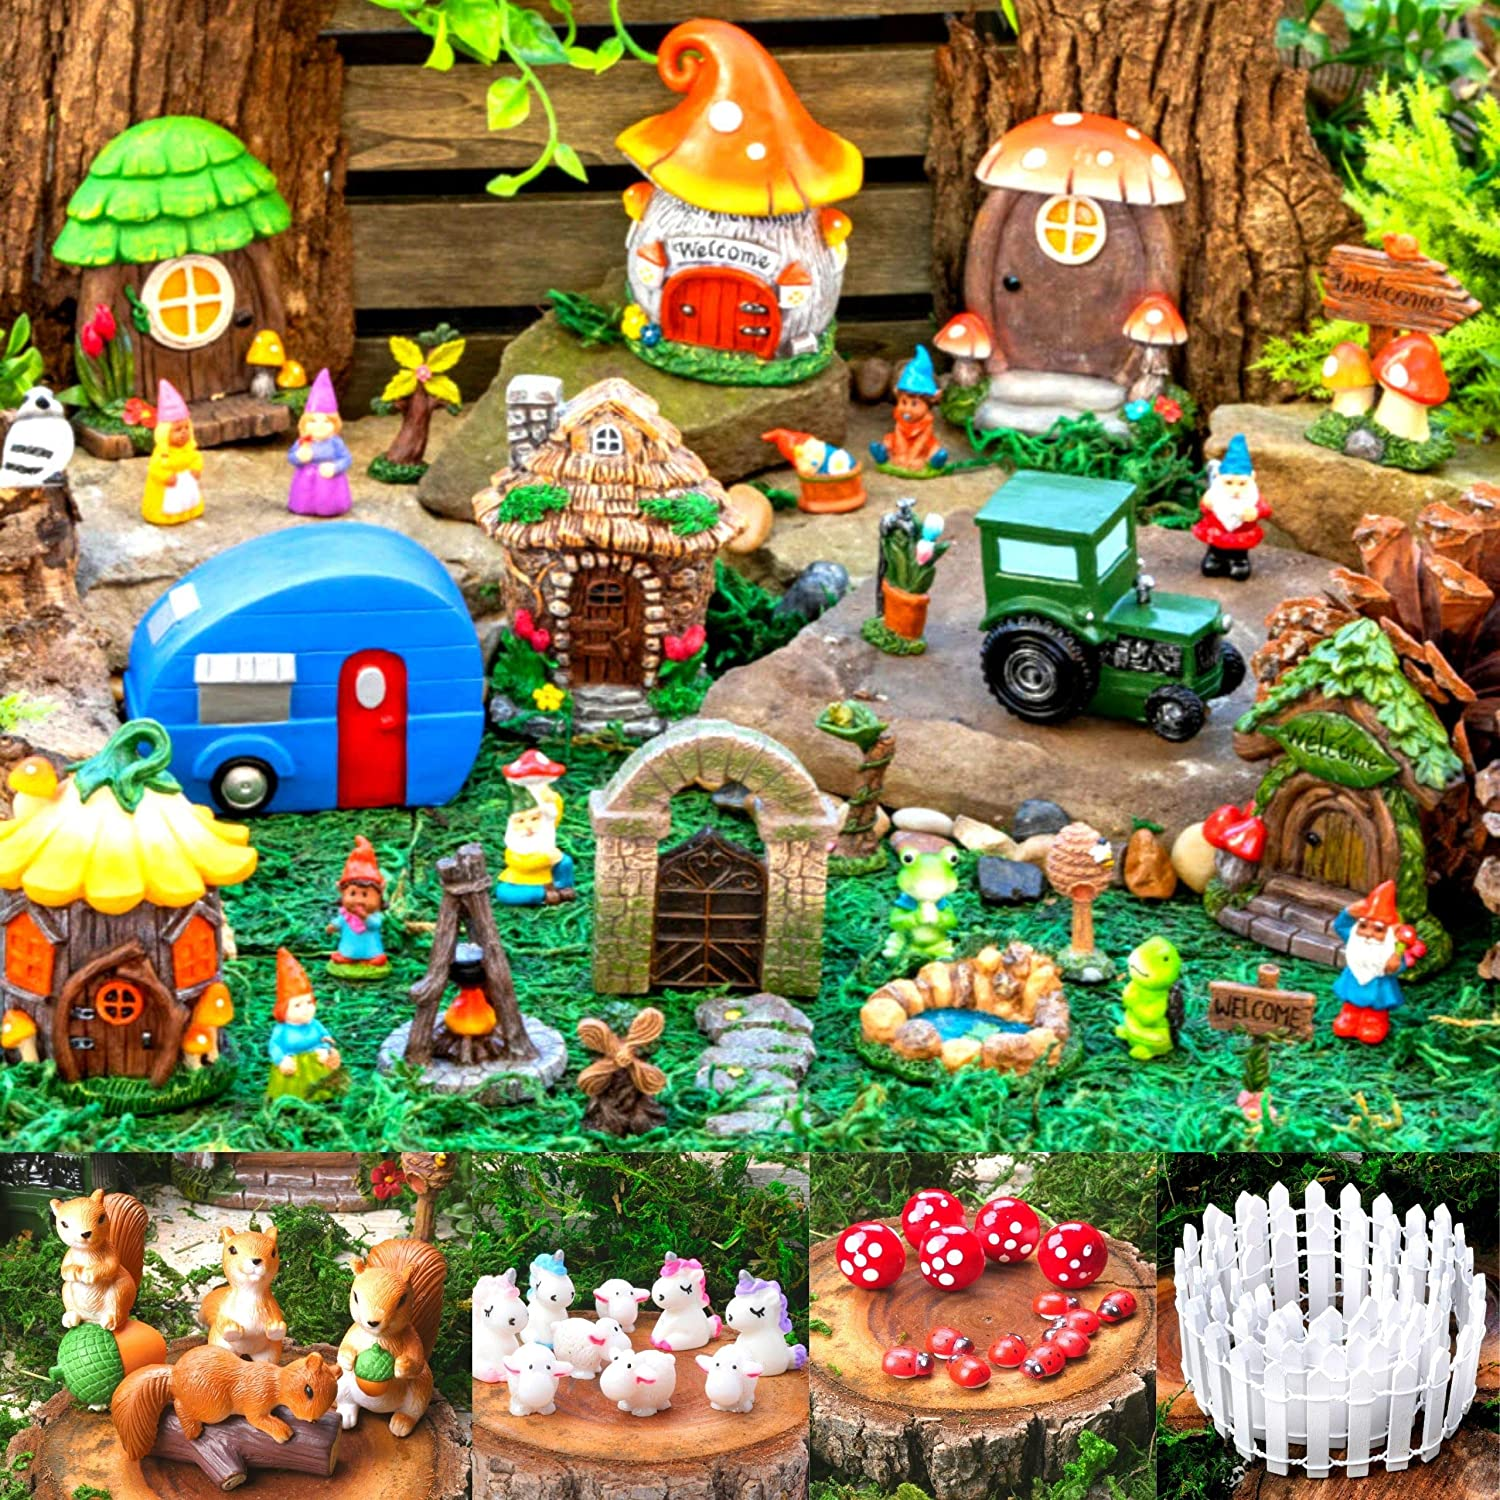 Ellie Arts Fairy Garden Kit for Kids – Fairy House Kit with 60 pcs - Fairy Garden Accessories for Adults and Kids - Fairy Garden Miniatures – Durable Poly Resin – Includes Moss